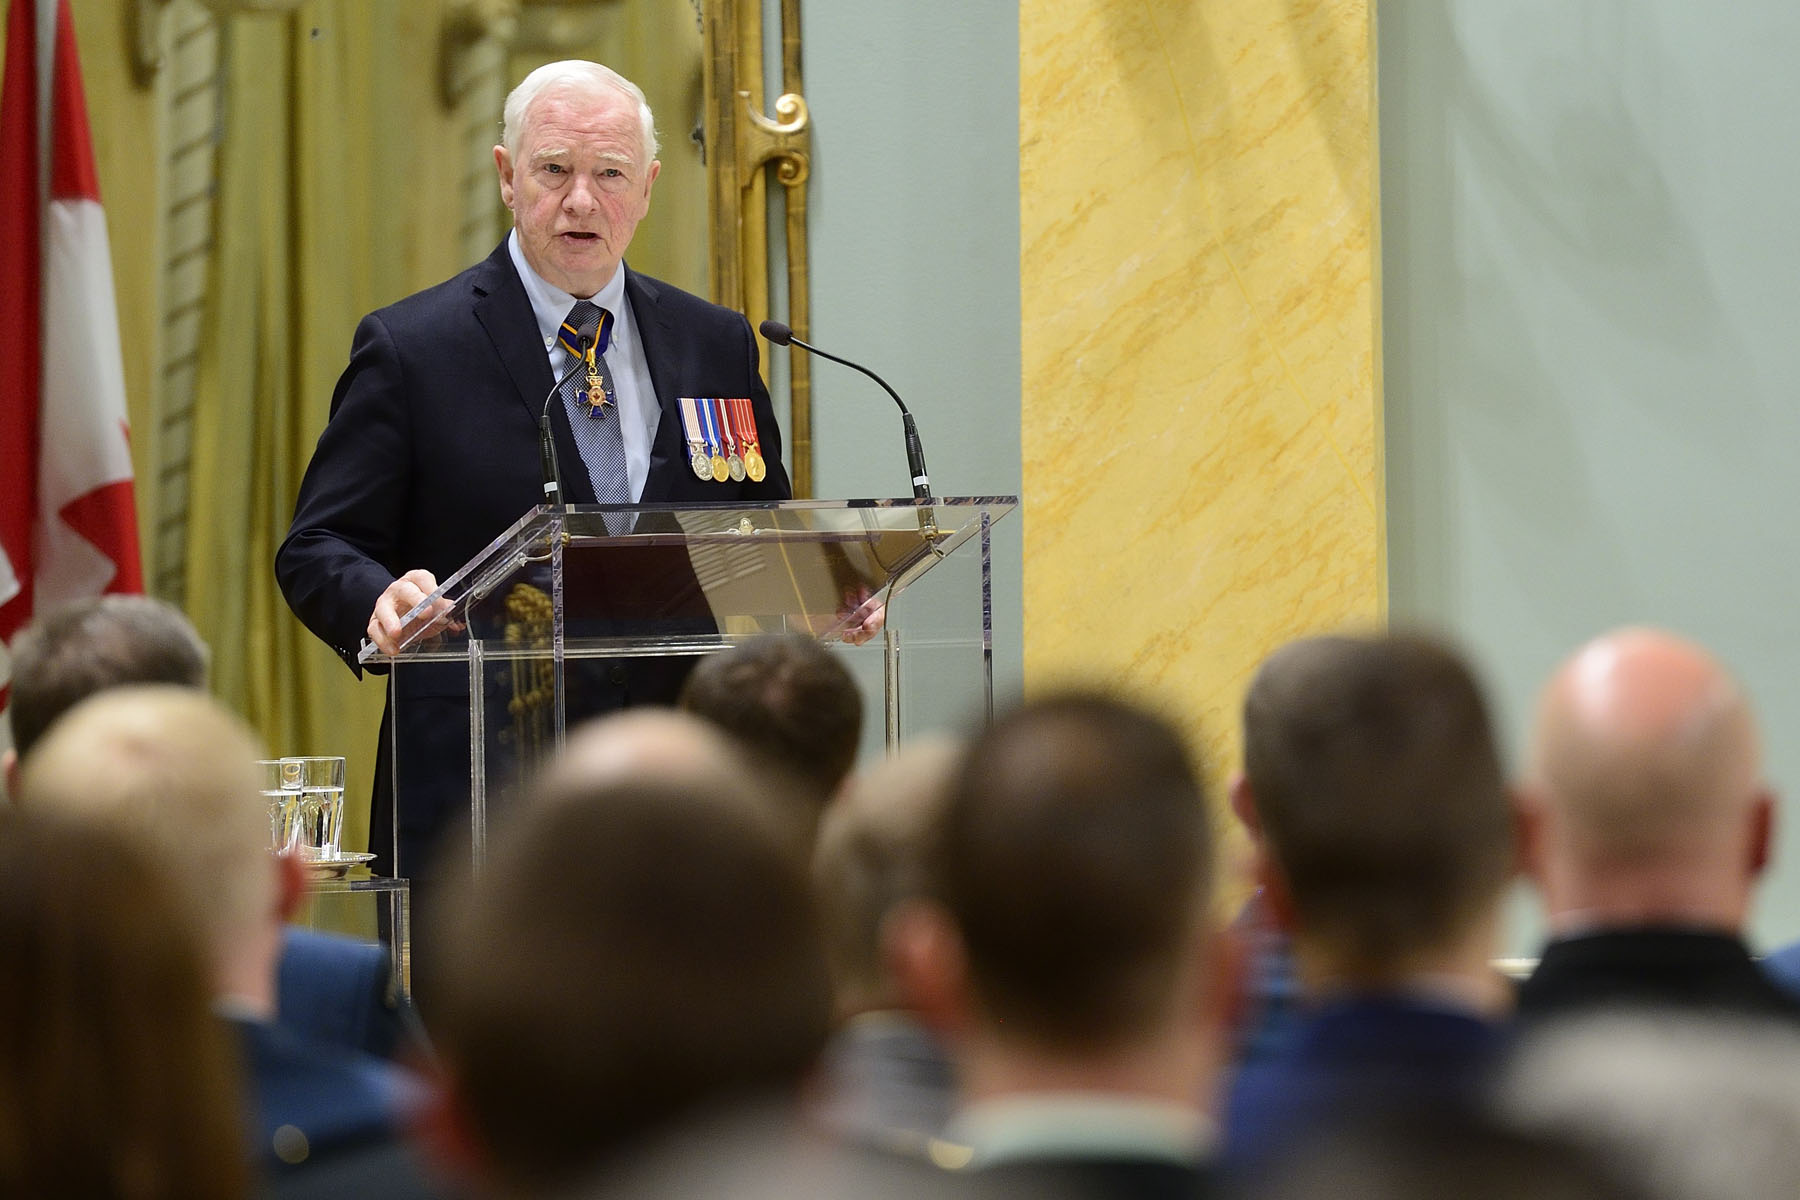 """Today, we celebrate acts of meritorious service and bravery. With these awards, we ensure two things: The first being that we can share your stories widely, that all Canadians are made aware of your actions. The second being that we can say thank you for all that you do,"" said the Governor General."